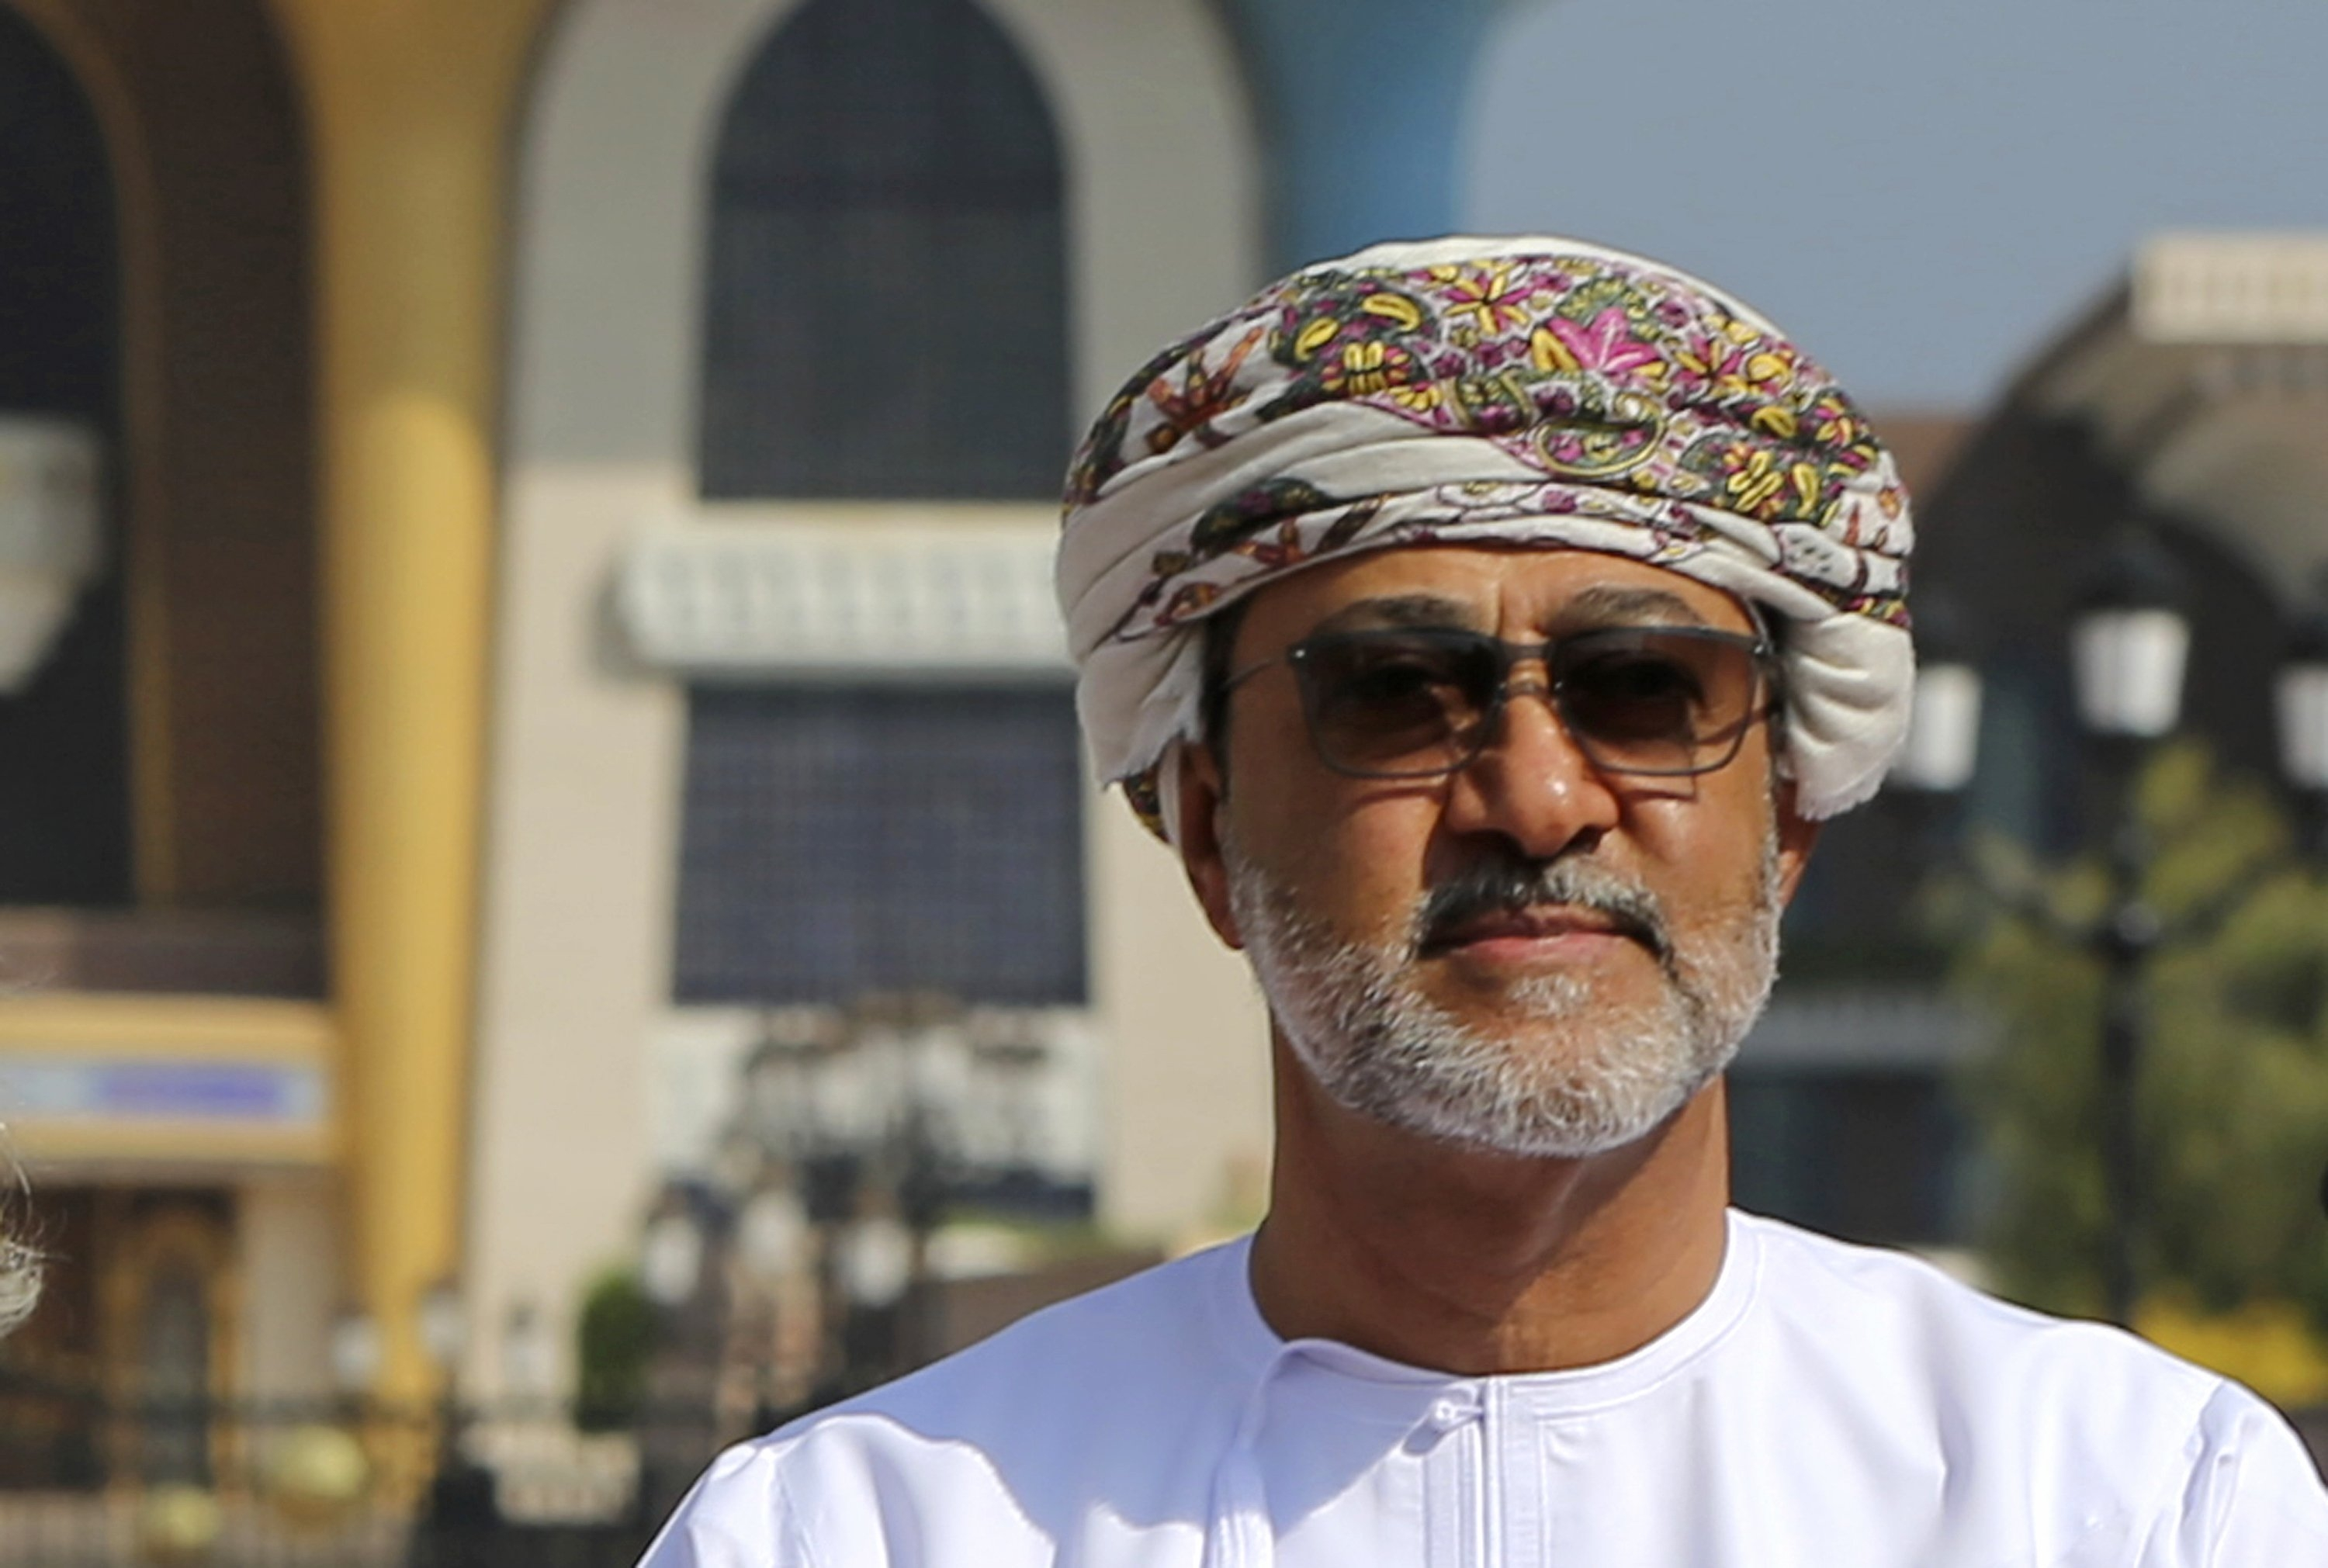 Cousin of late Oman sultan sworn in as new ruler